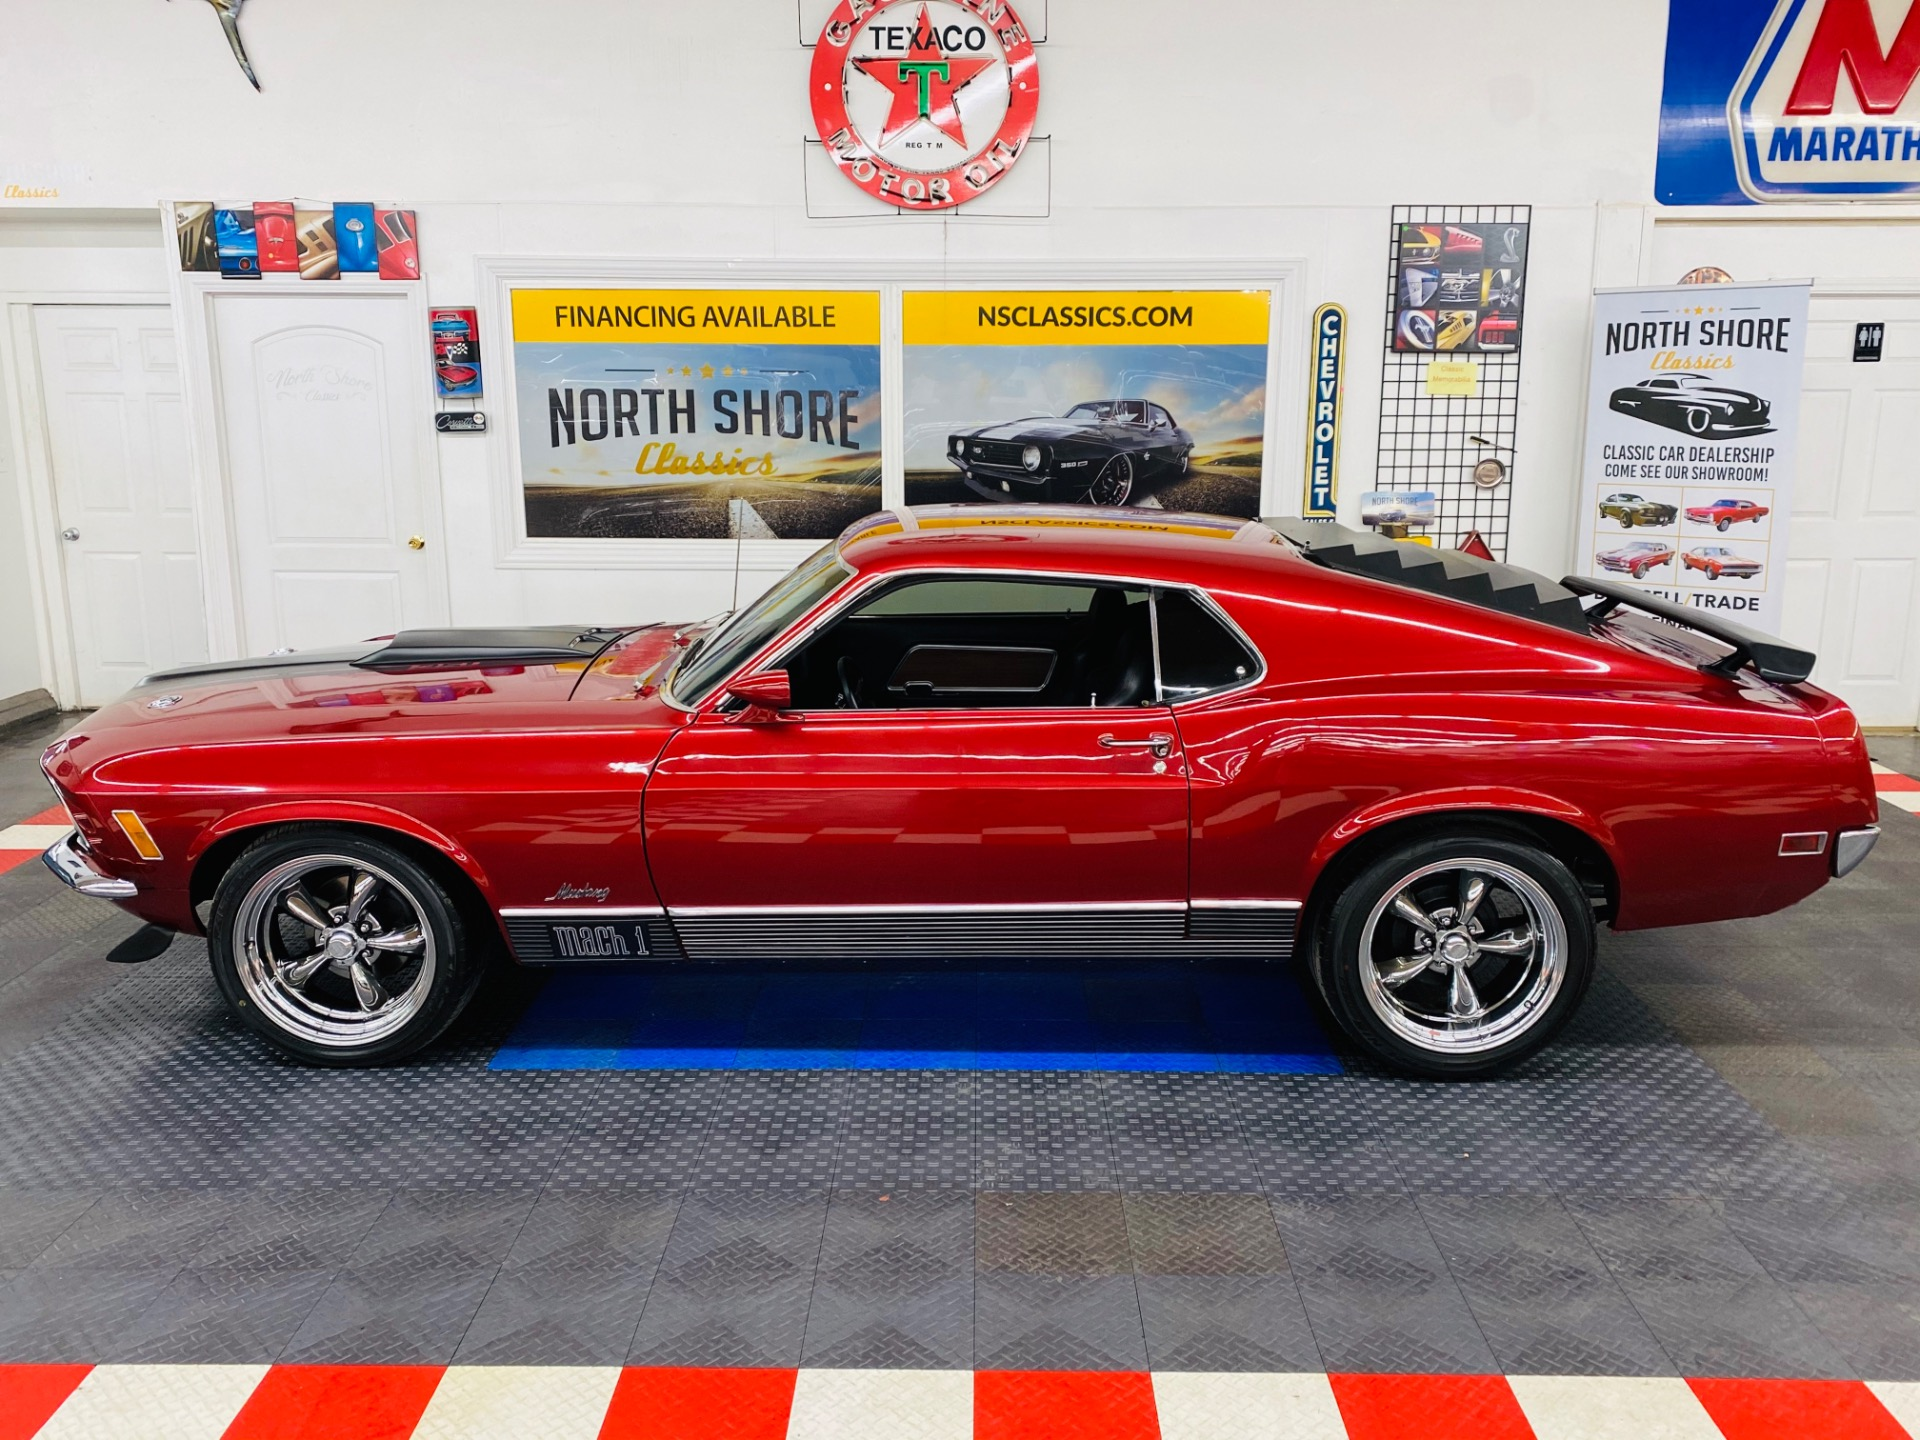 Used 1970 Ford Mustang - MACH 1 - 351 ENGINE - PRO TOURING STYLE - A/C - SEE VIDEO | Mundelein, IL